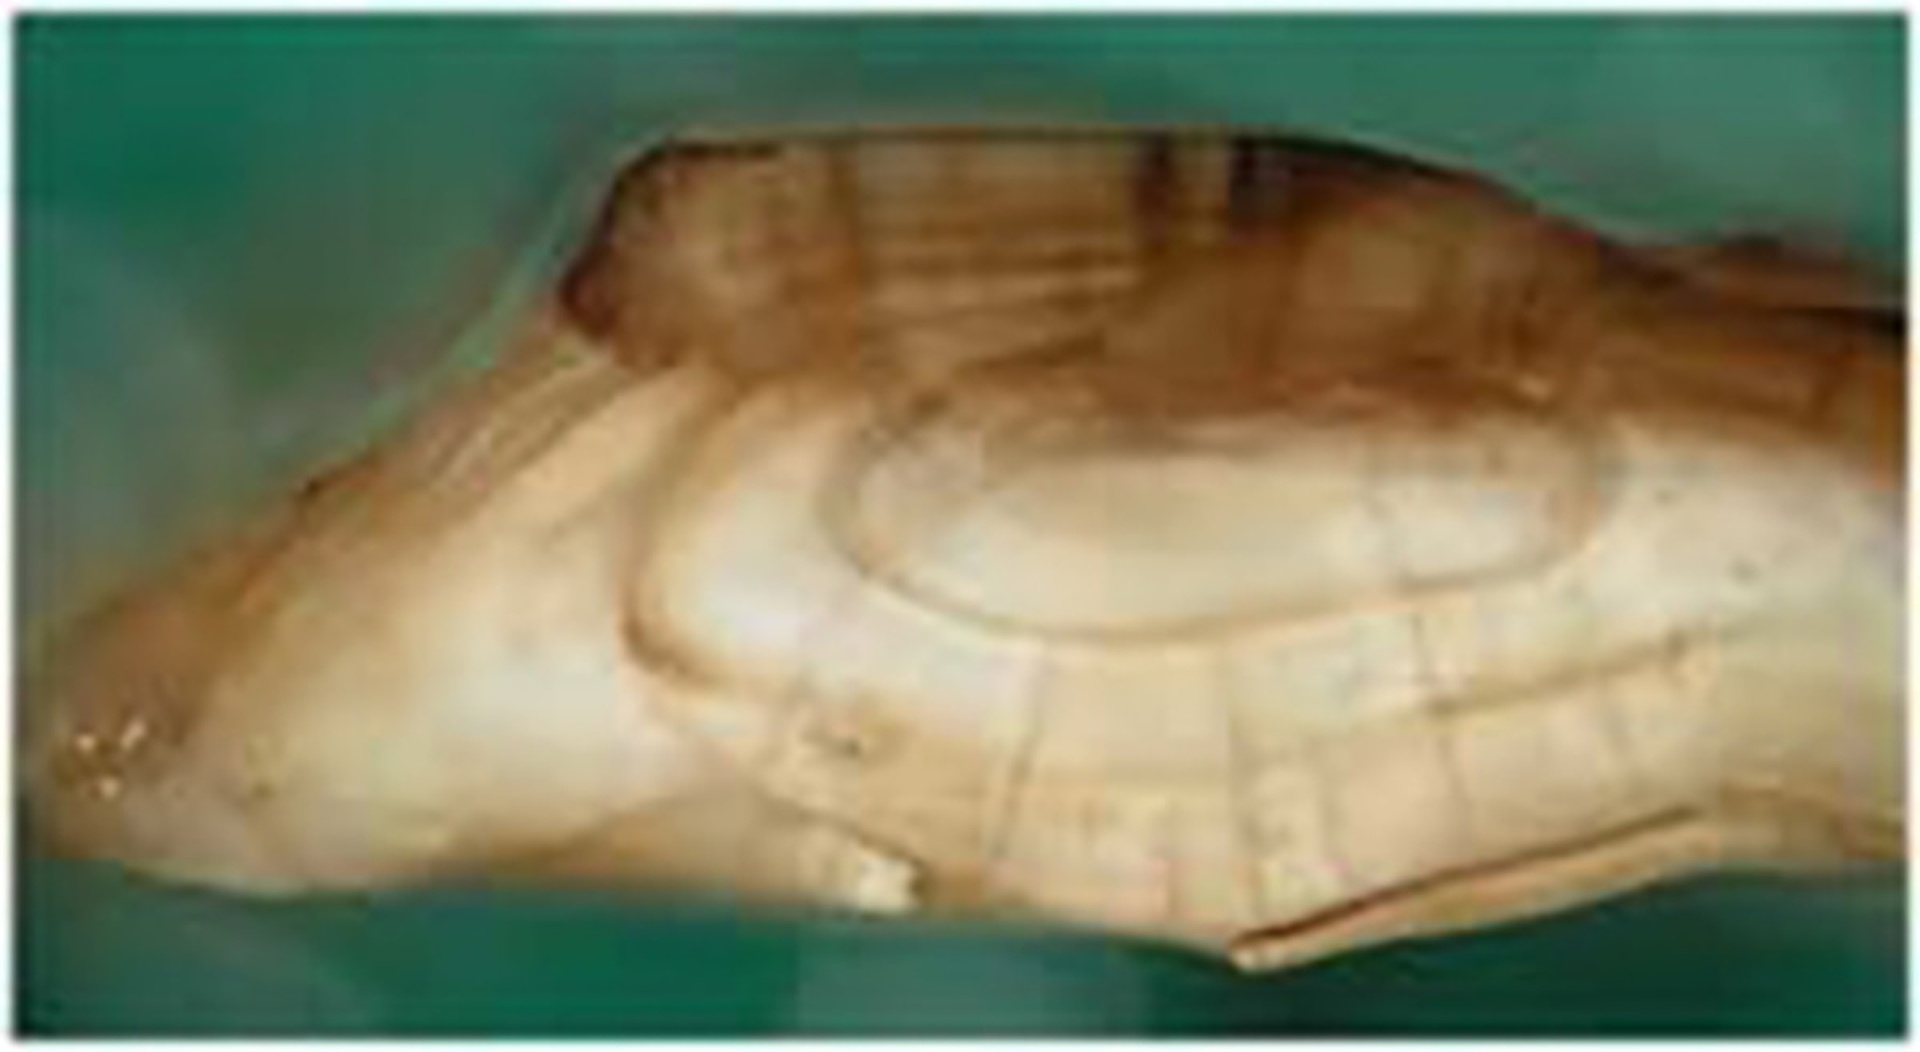 Cross-section of a walleye ear bone, or otolith, showing growth rings. Image courtesy of Ohio State University.